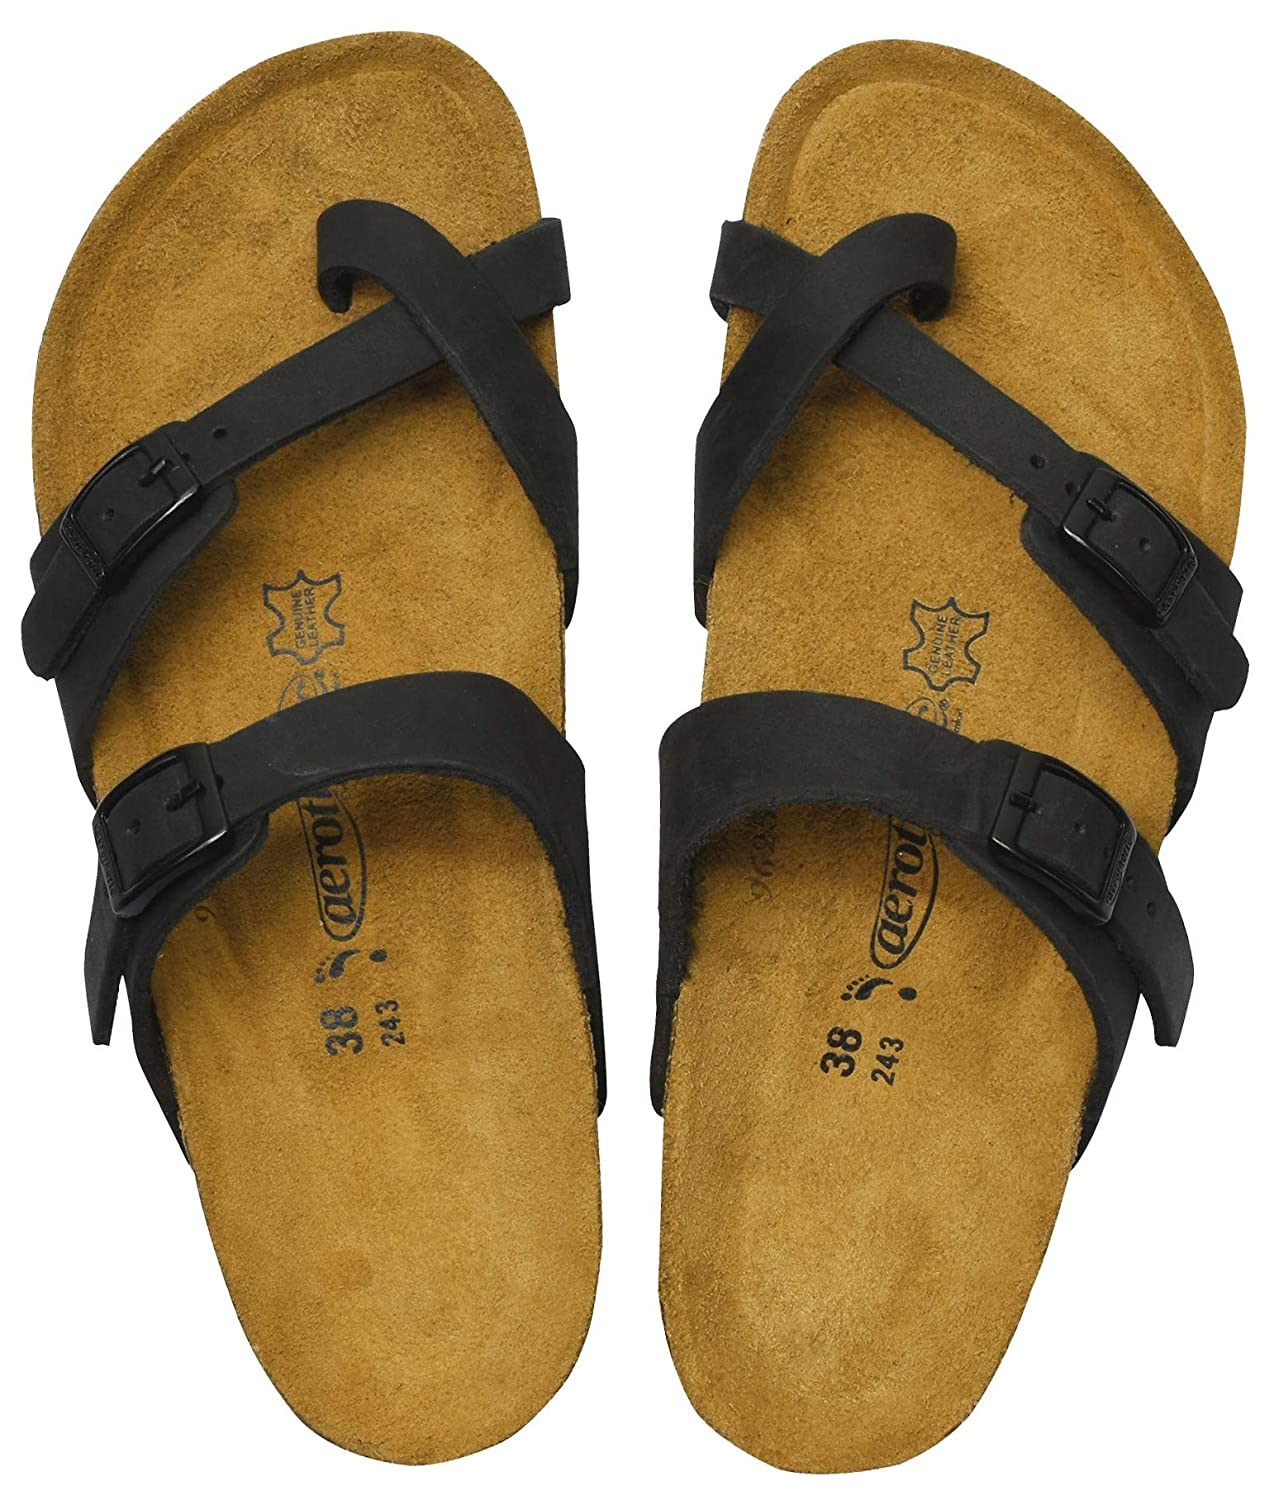 Women's Comfortable Arch Support Minerva Black Leather Sandals - DeluxeAdultCostumes.com